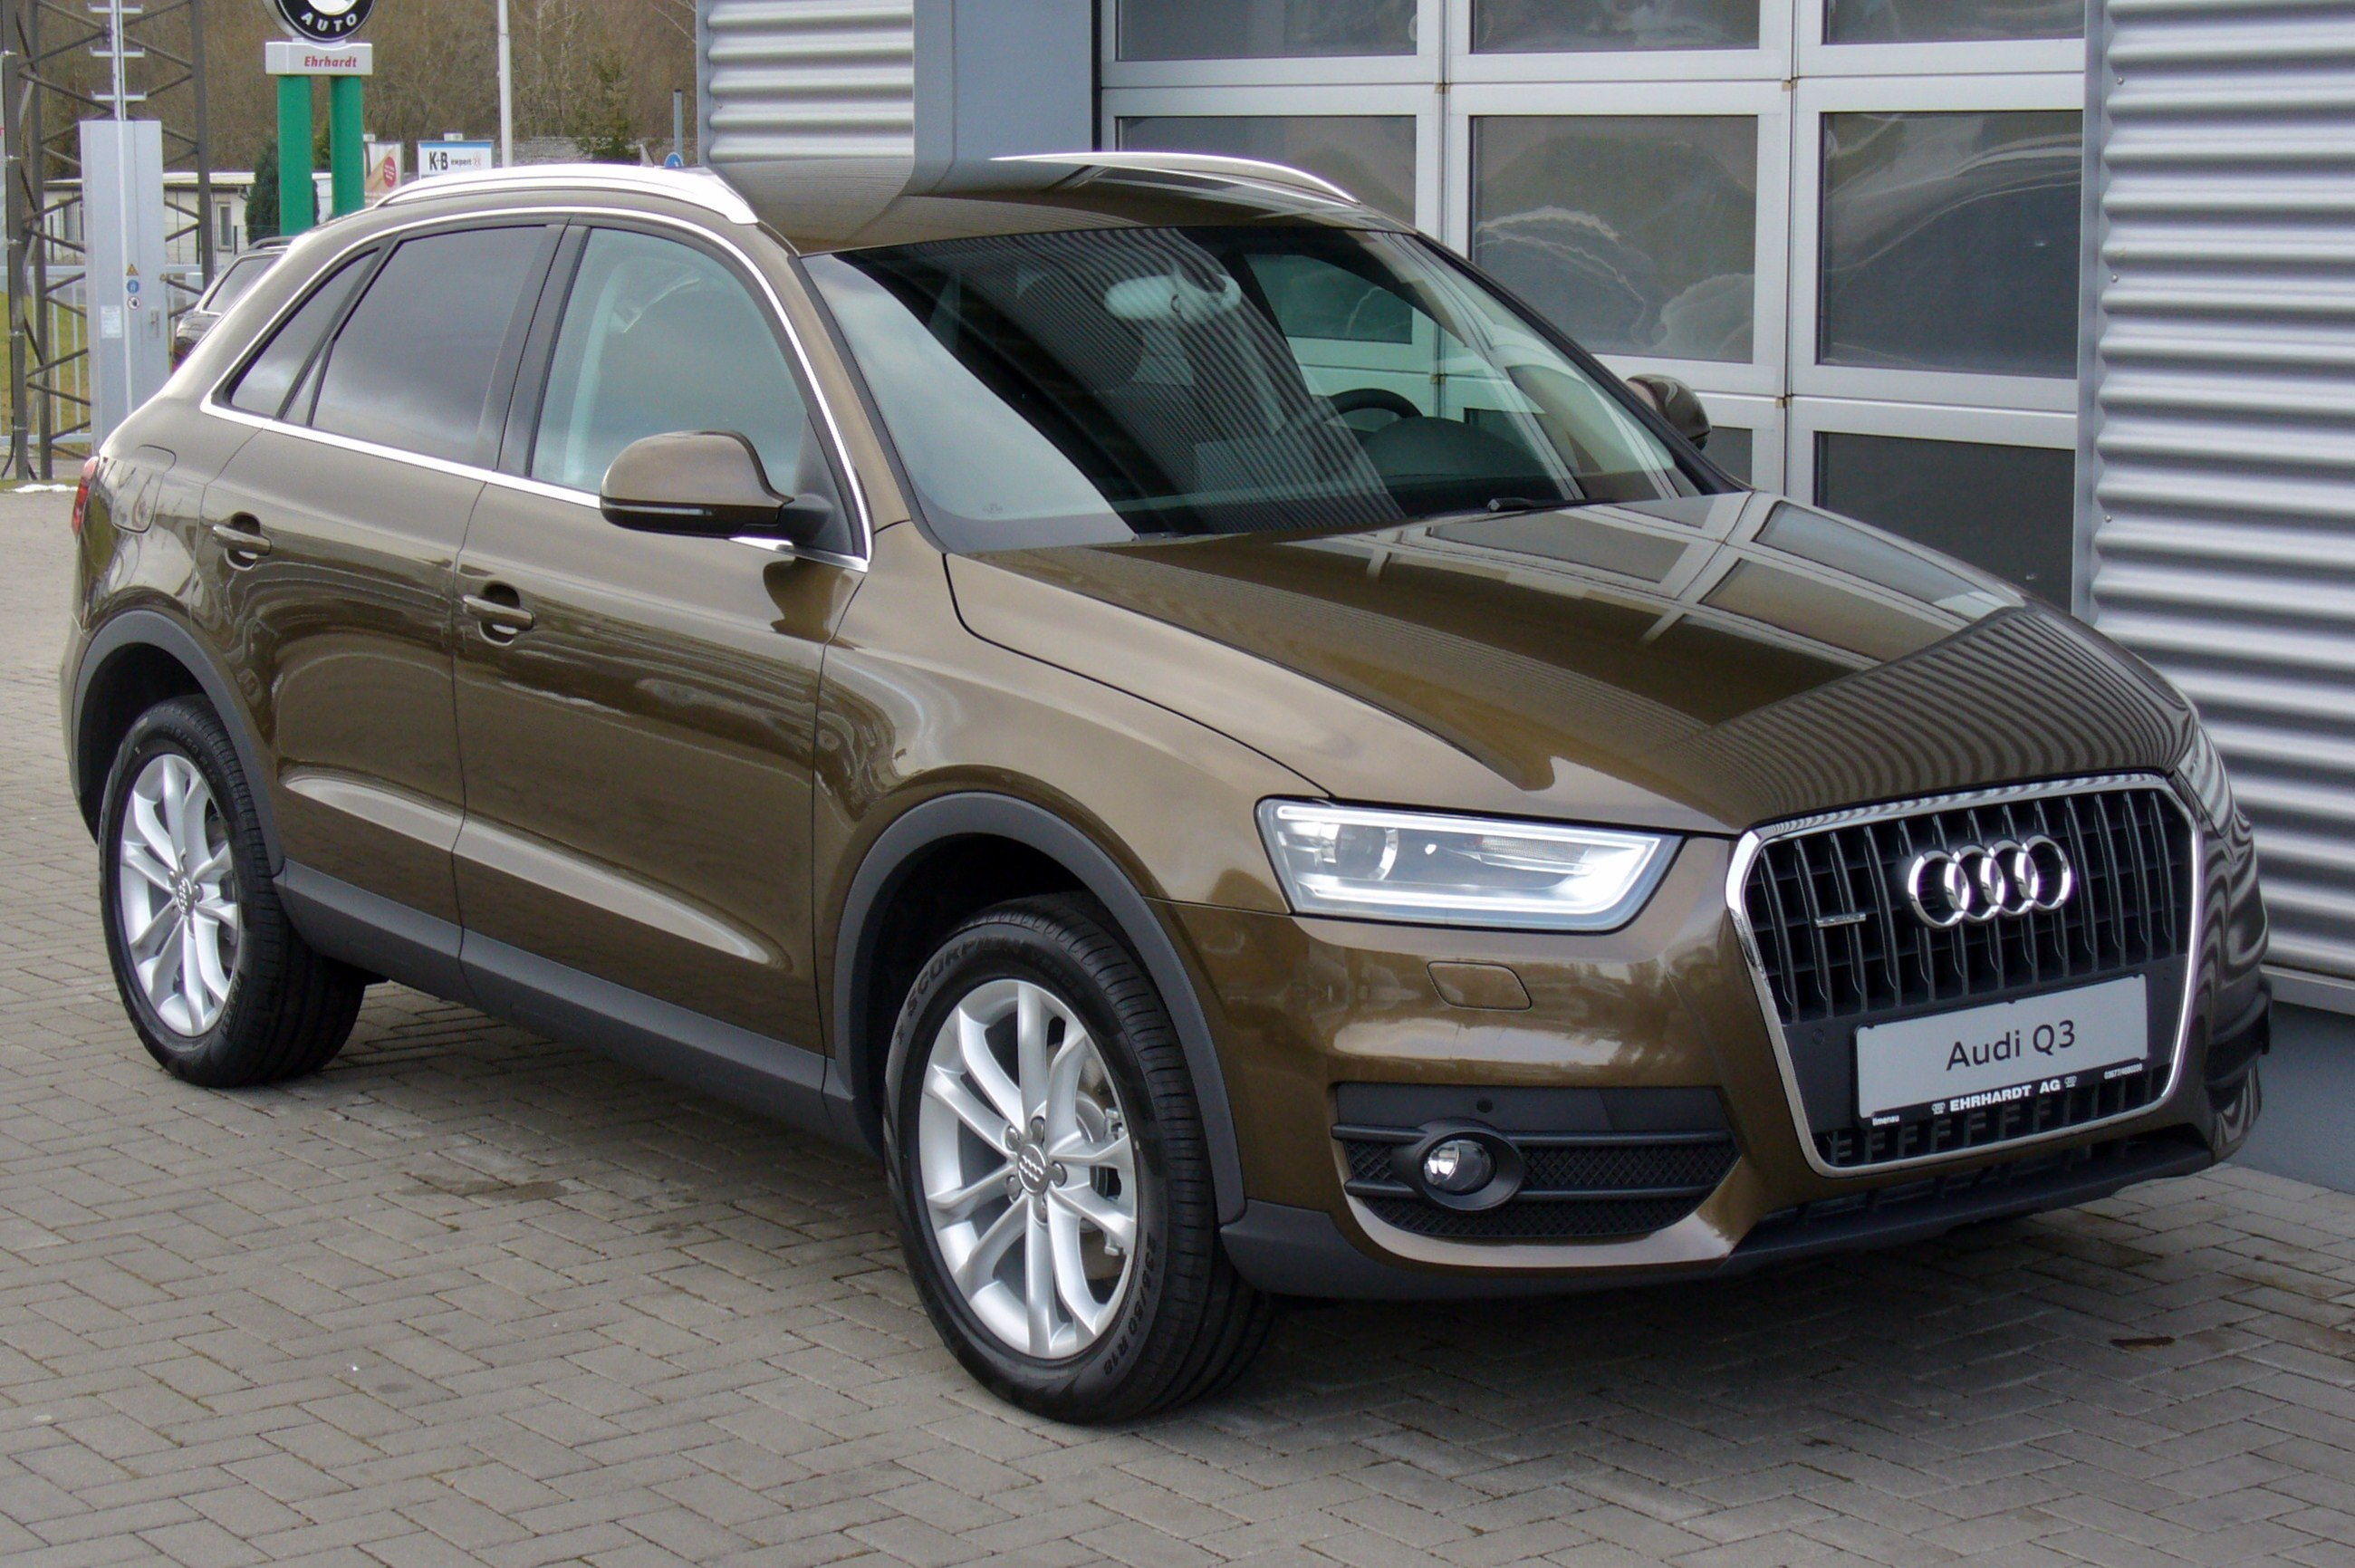 Audi Q3 The plete information and online sale with free